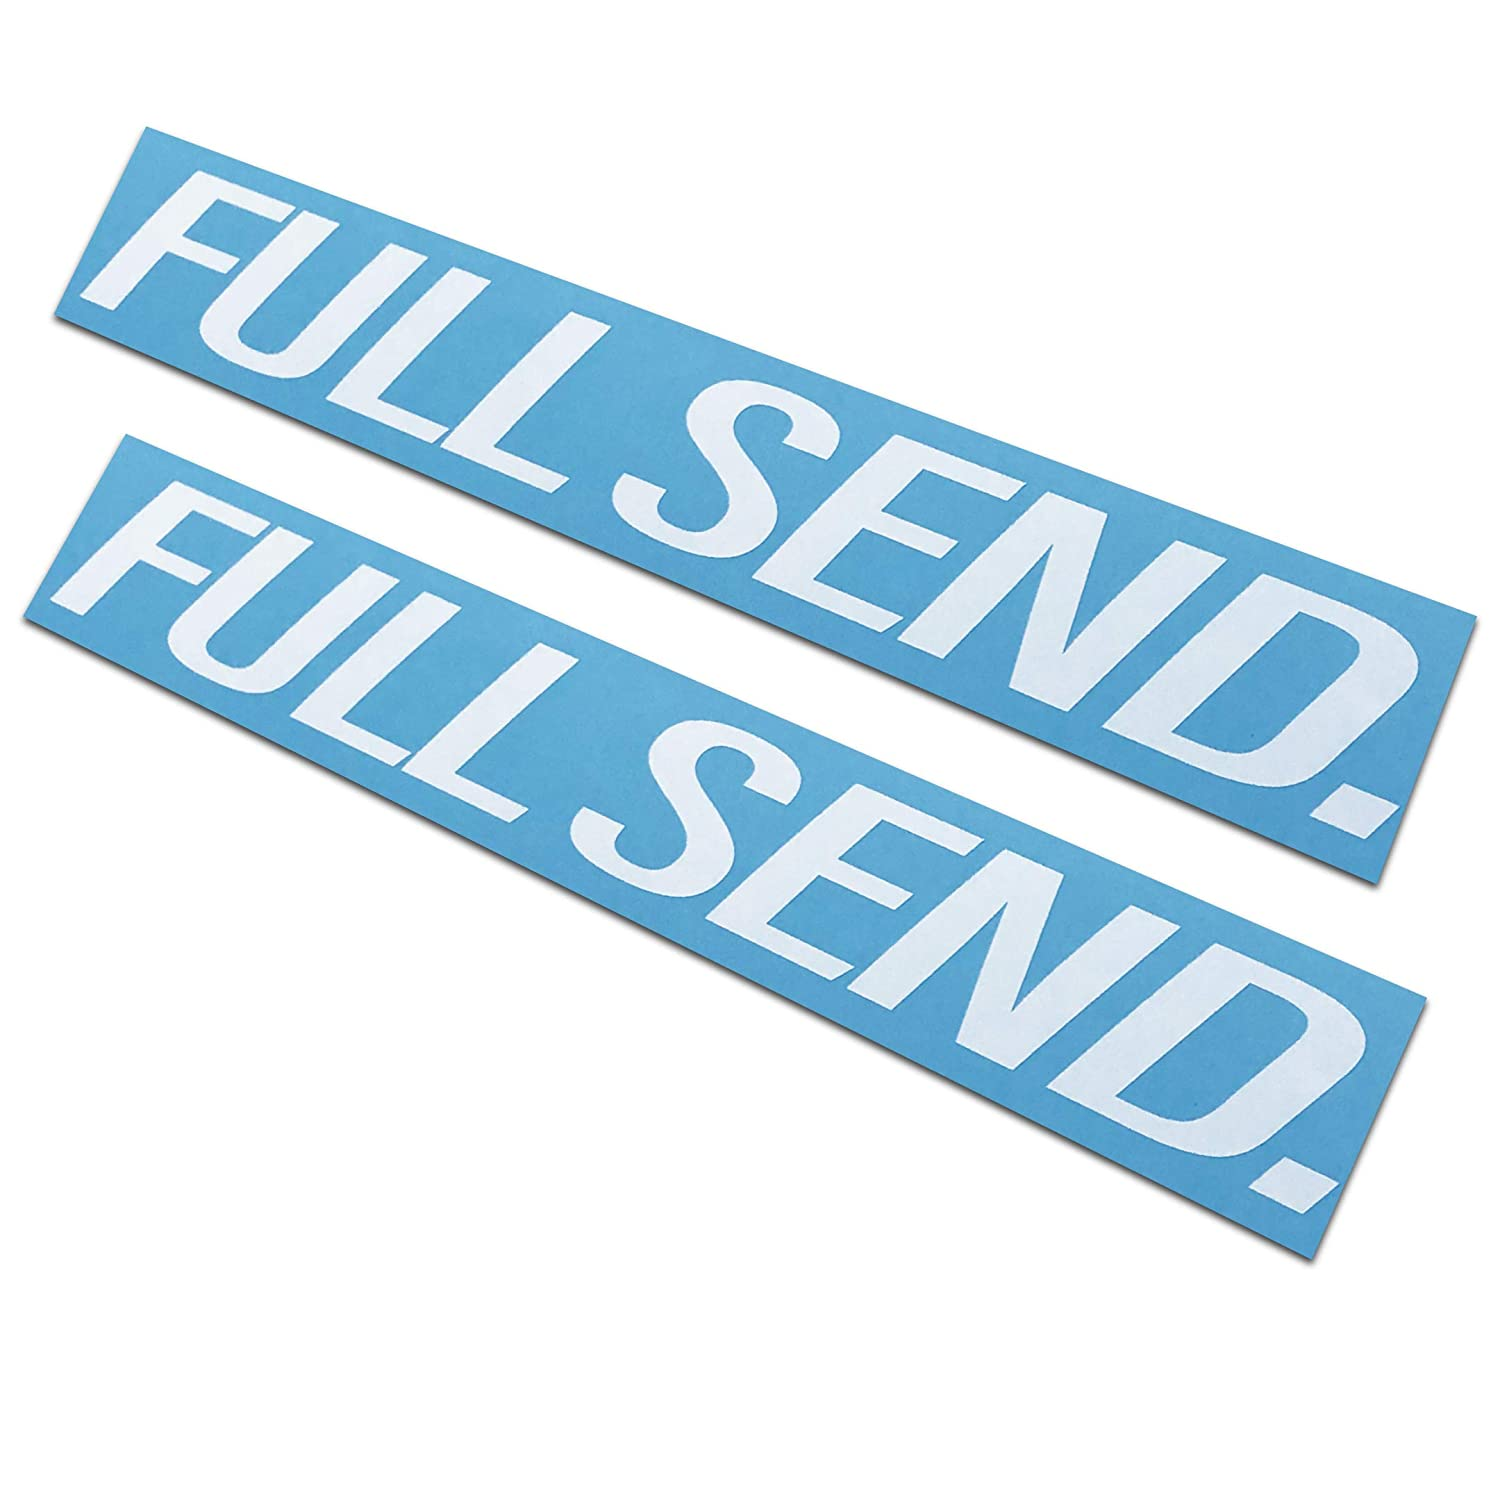 Full Send Decals//Stickers 1.5x11 Rdecals 2 Pack